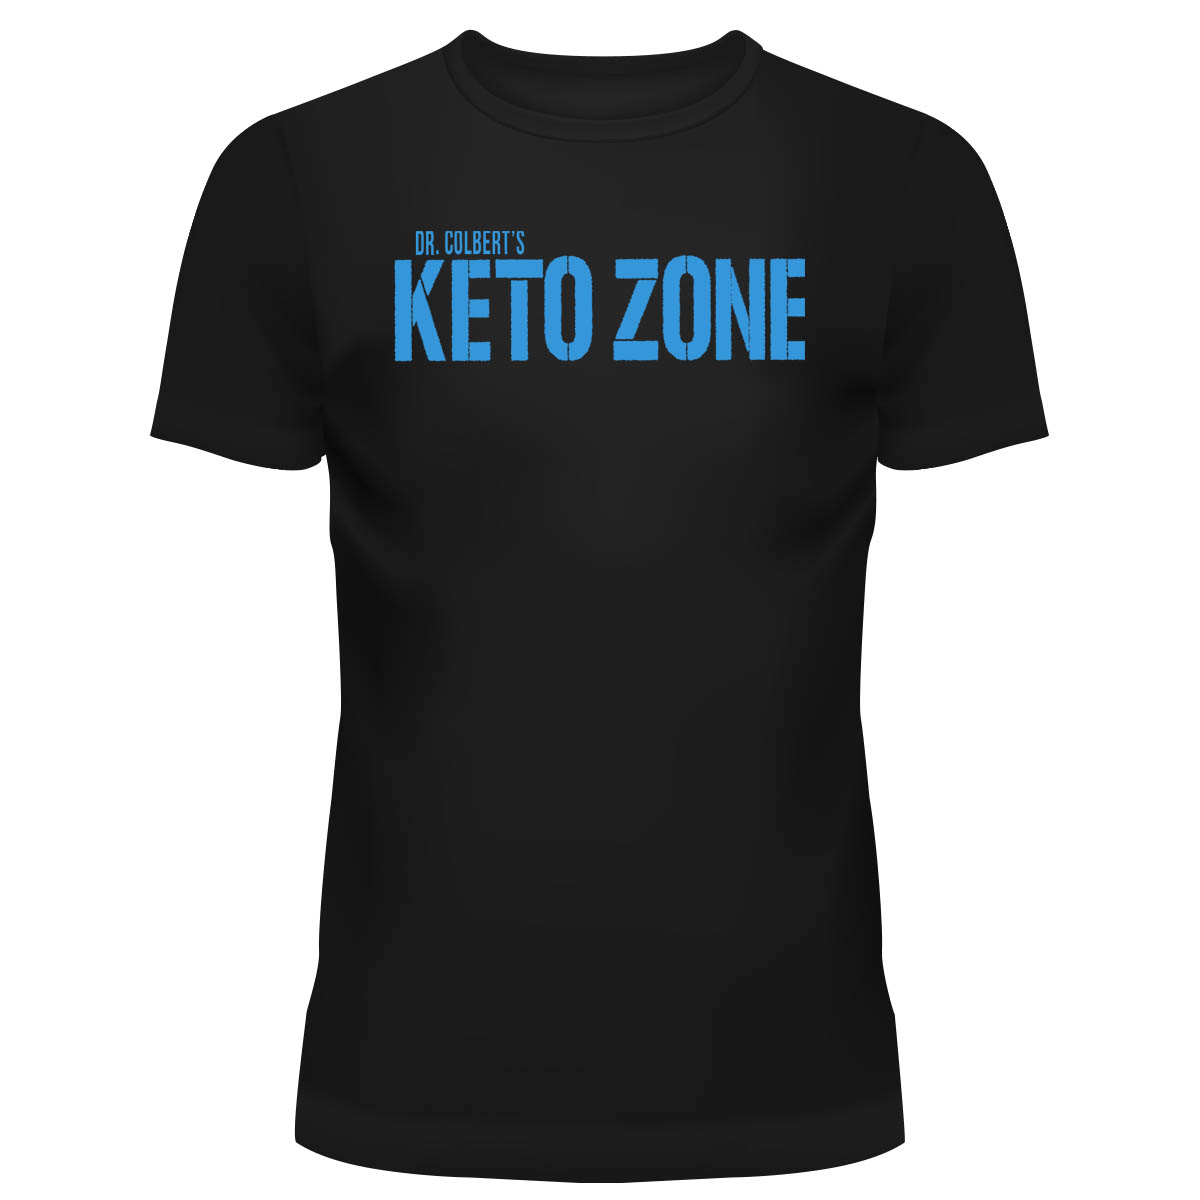 New ! Keto Shirts For Women (Black)